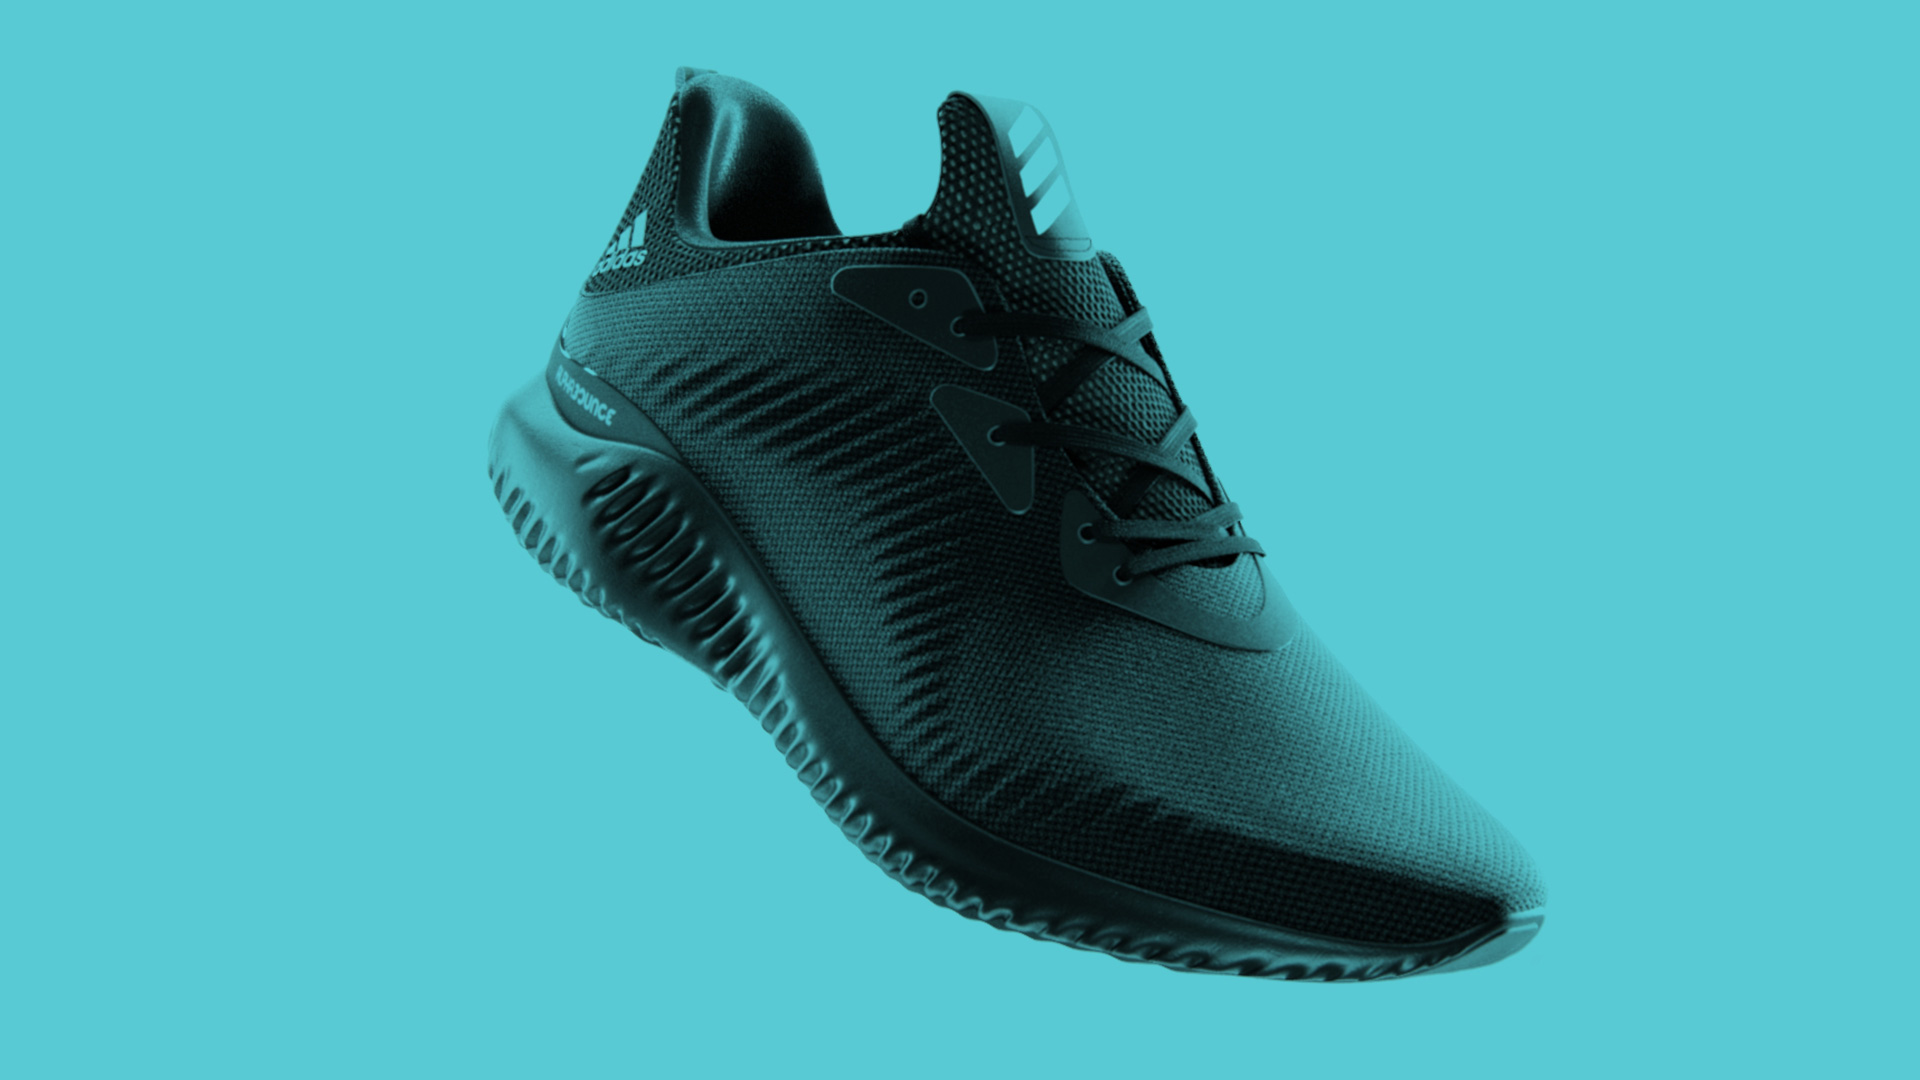 £d render of adidas alphabounce shoe